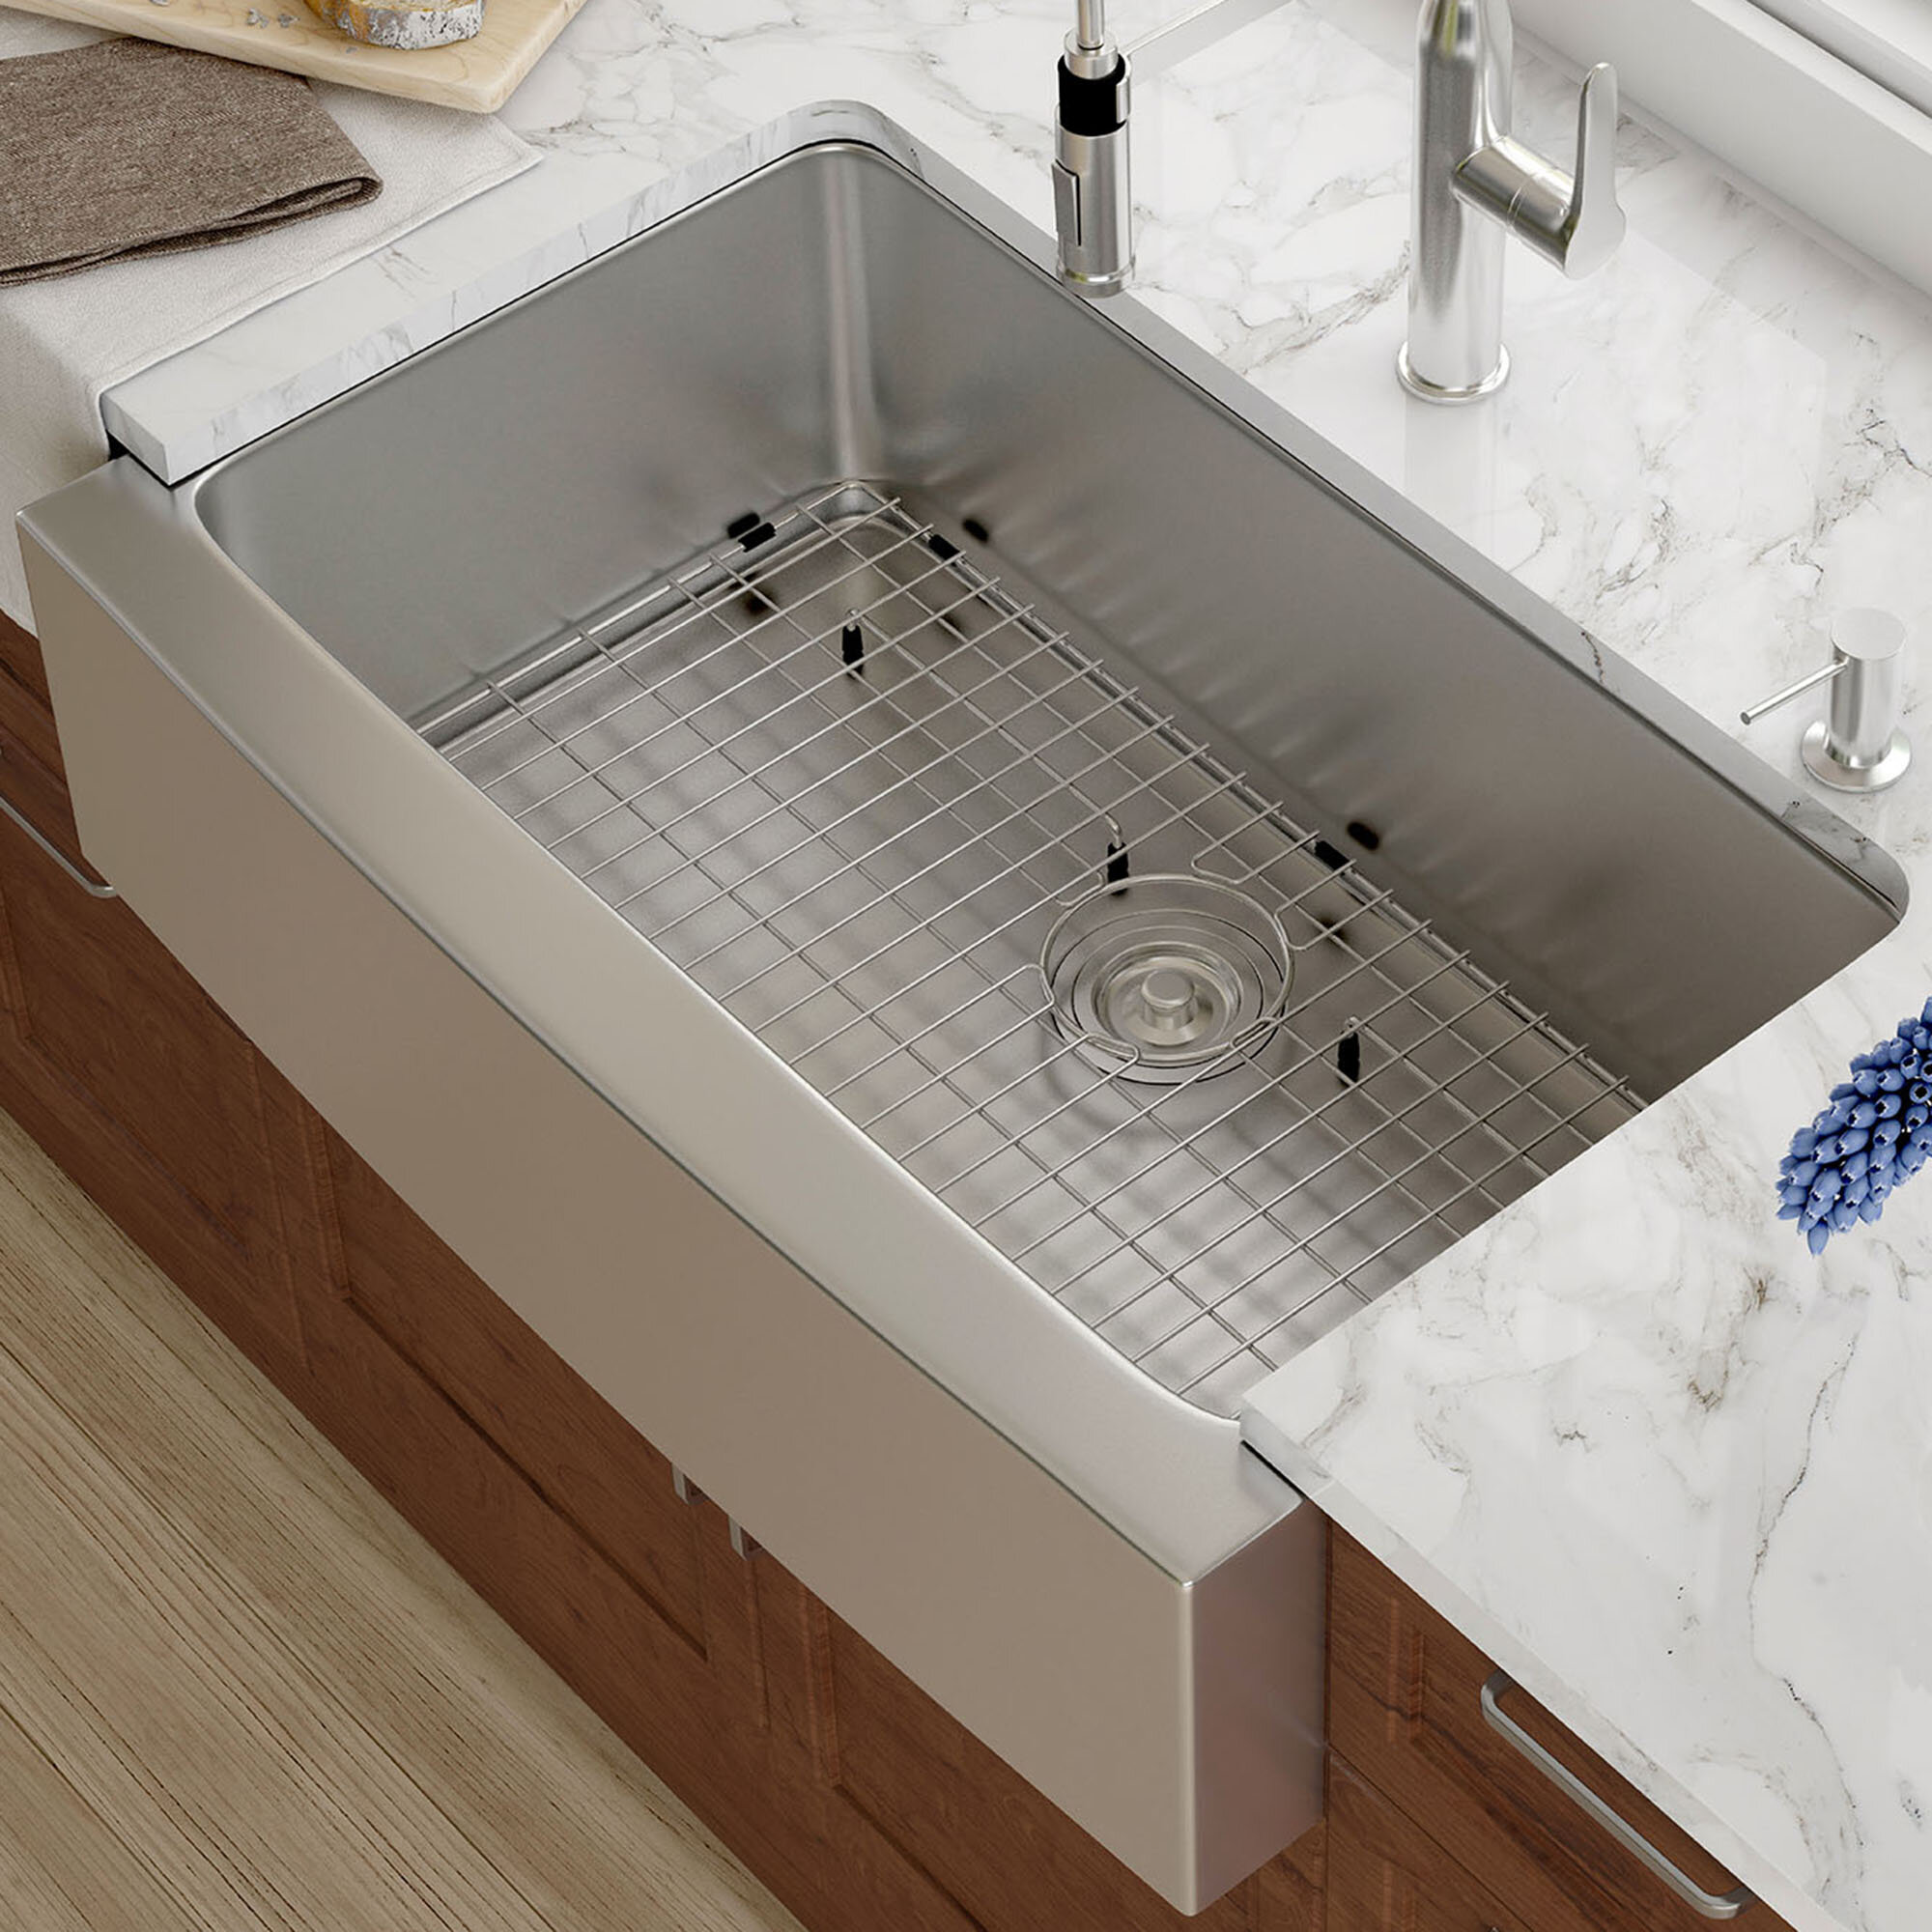 open kitchen sink kraus 33 quot x 21 quot farmhouse kitchen sink with drain assembly 1208